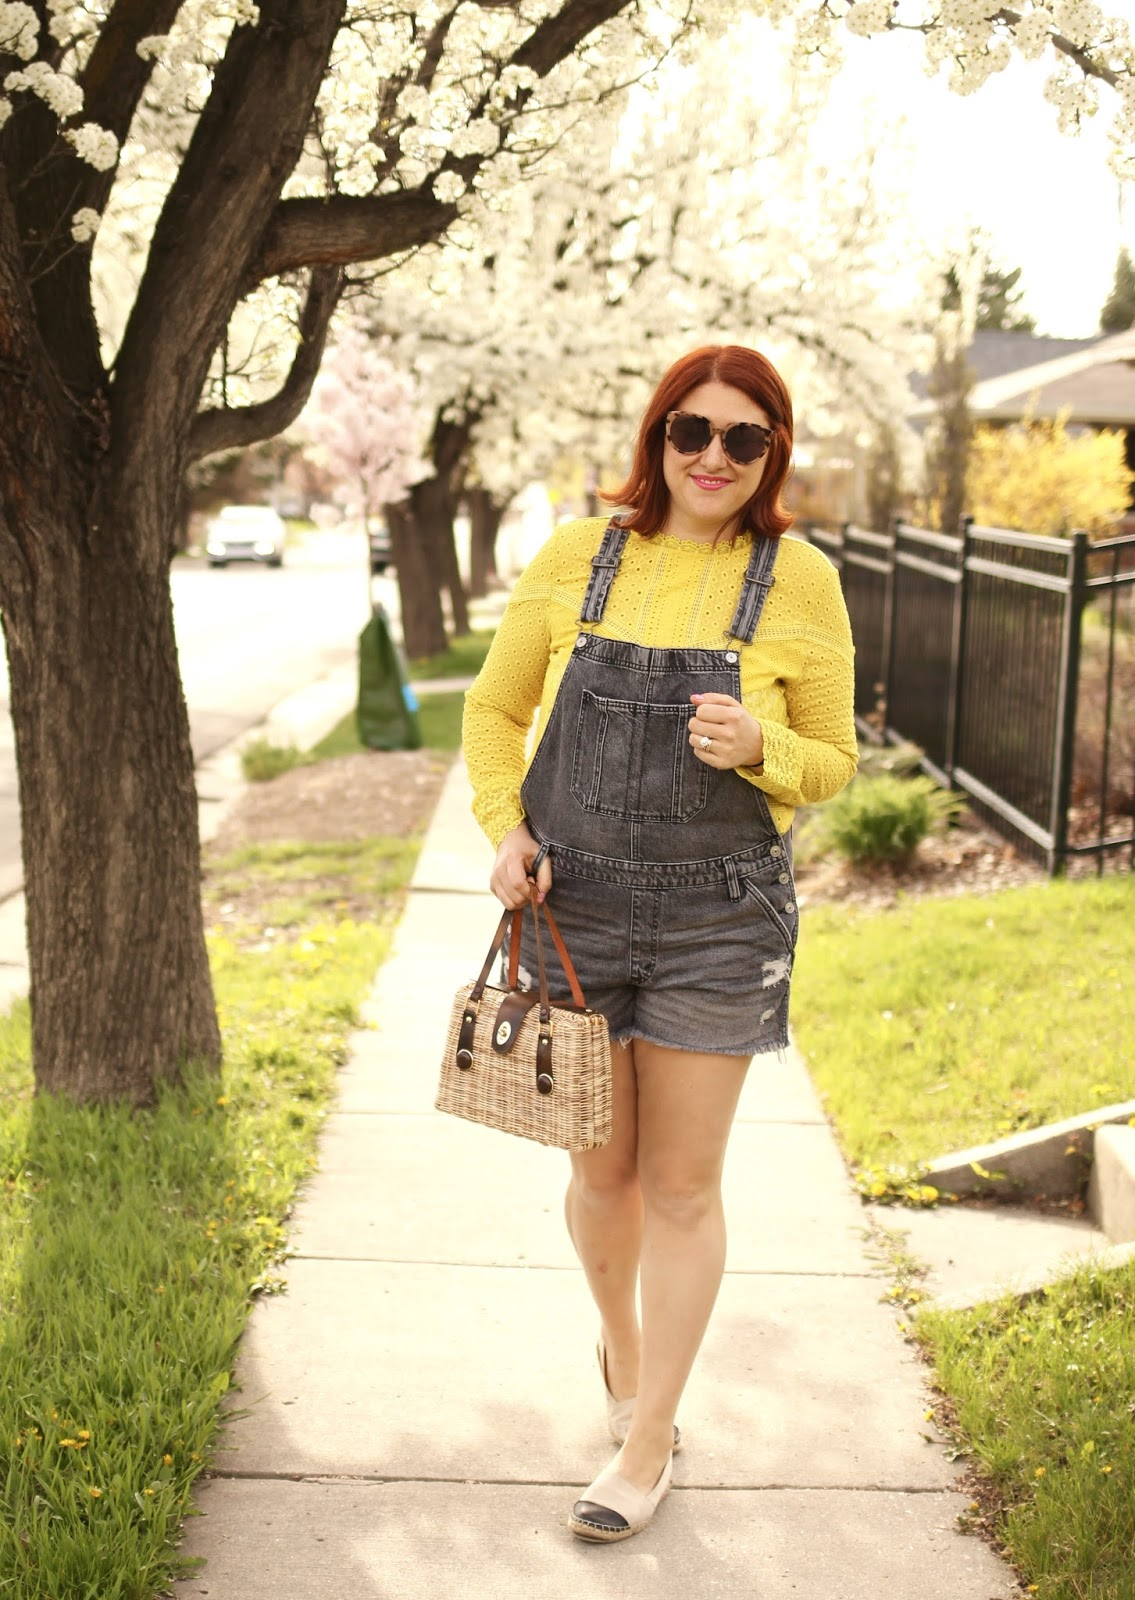 Abercrombie classic shortalls, yellow lace burnham anthropologie tee, Two tone espadrilles, vintage straw bag